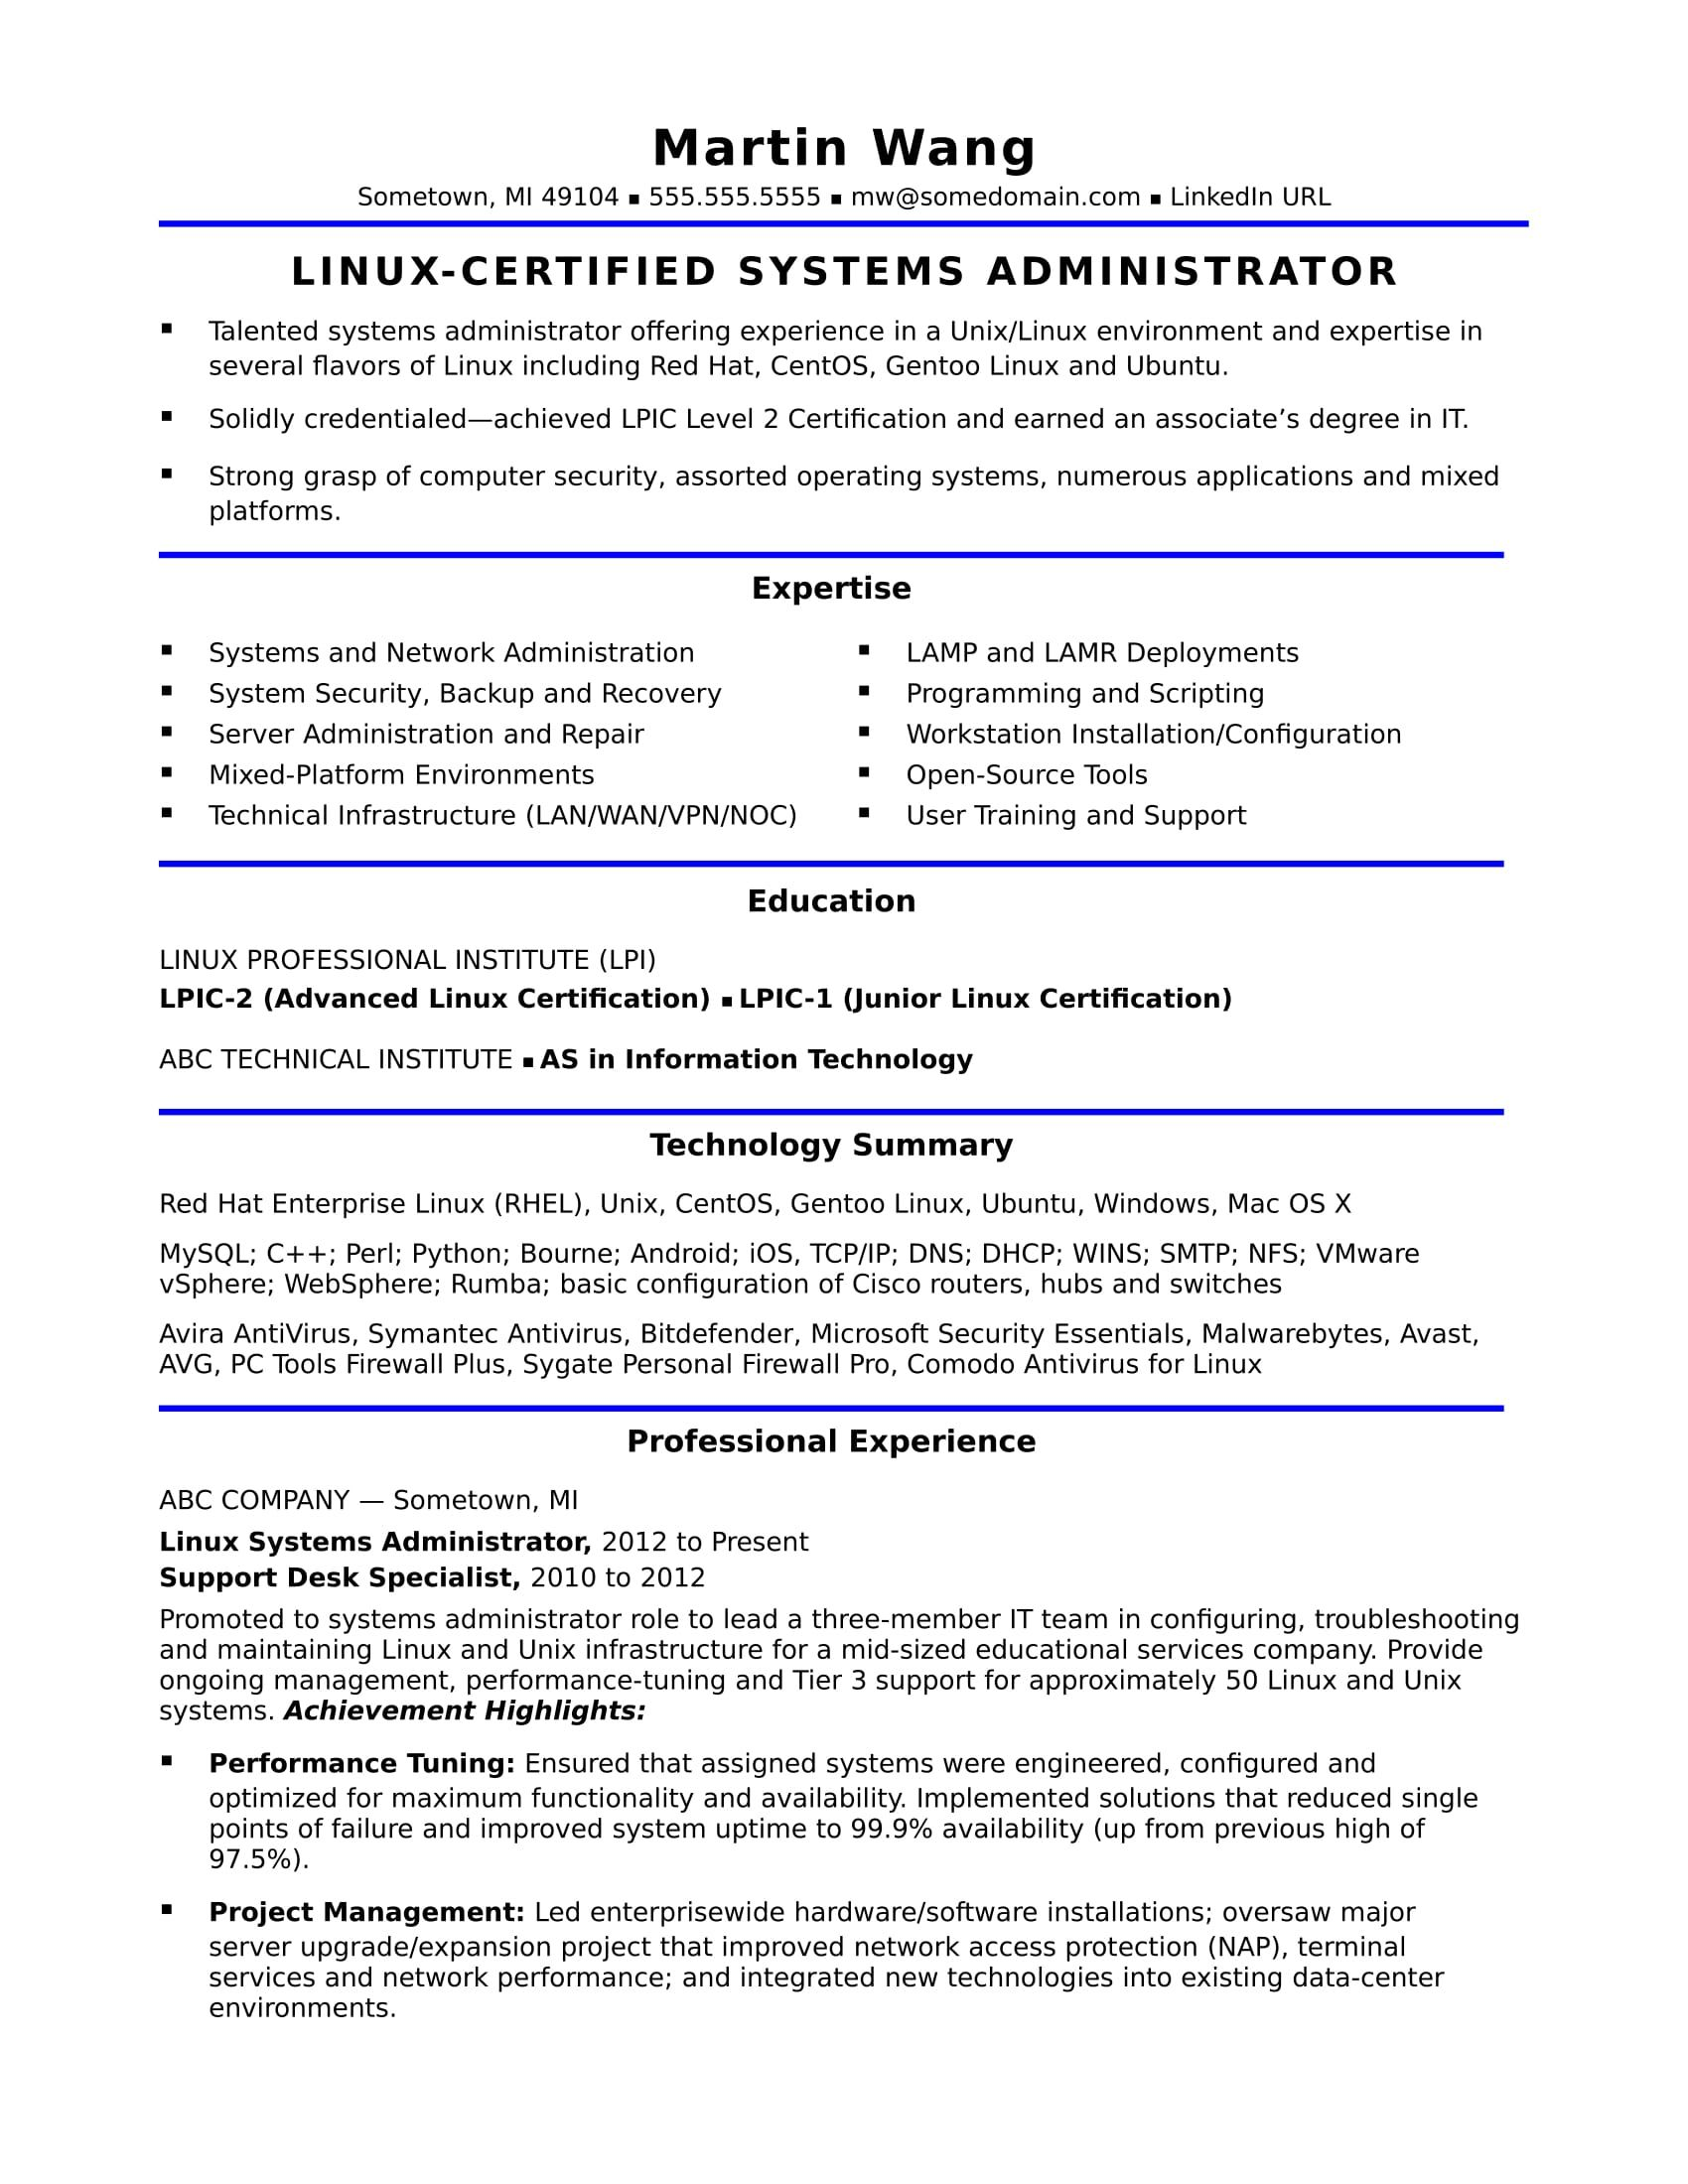 Educational Administrator Sample Resume Simple See This Sample Resume For A Midlevel Systems Adminstrator For Help .